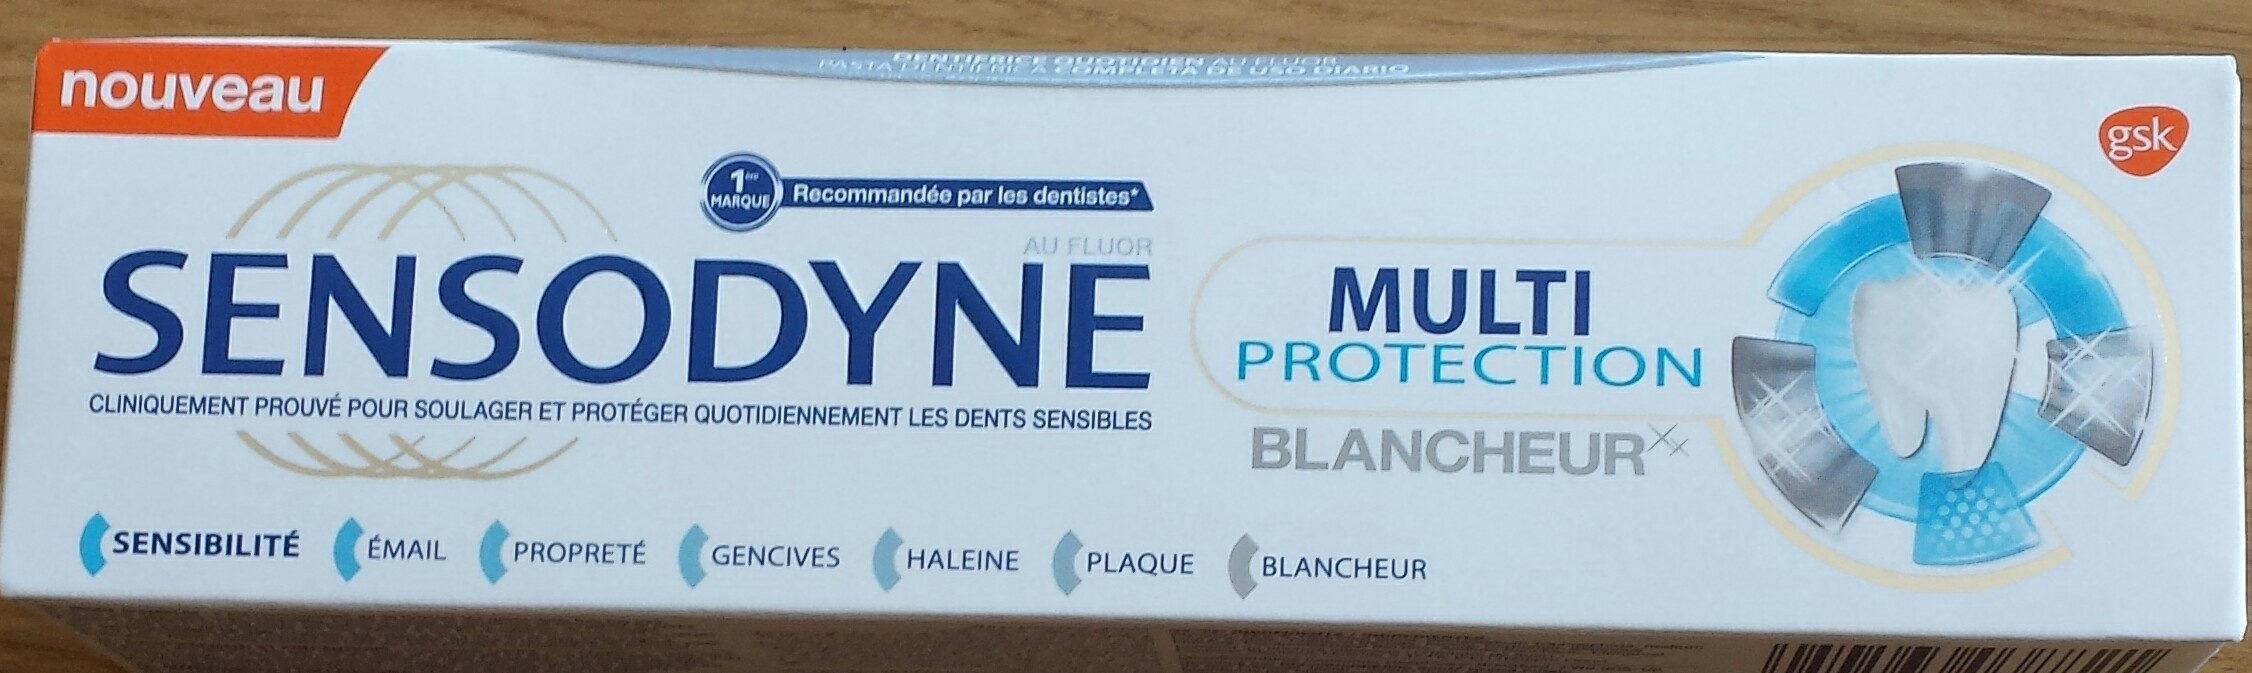 SENSODYNE multi protection blancheur - Product - fr